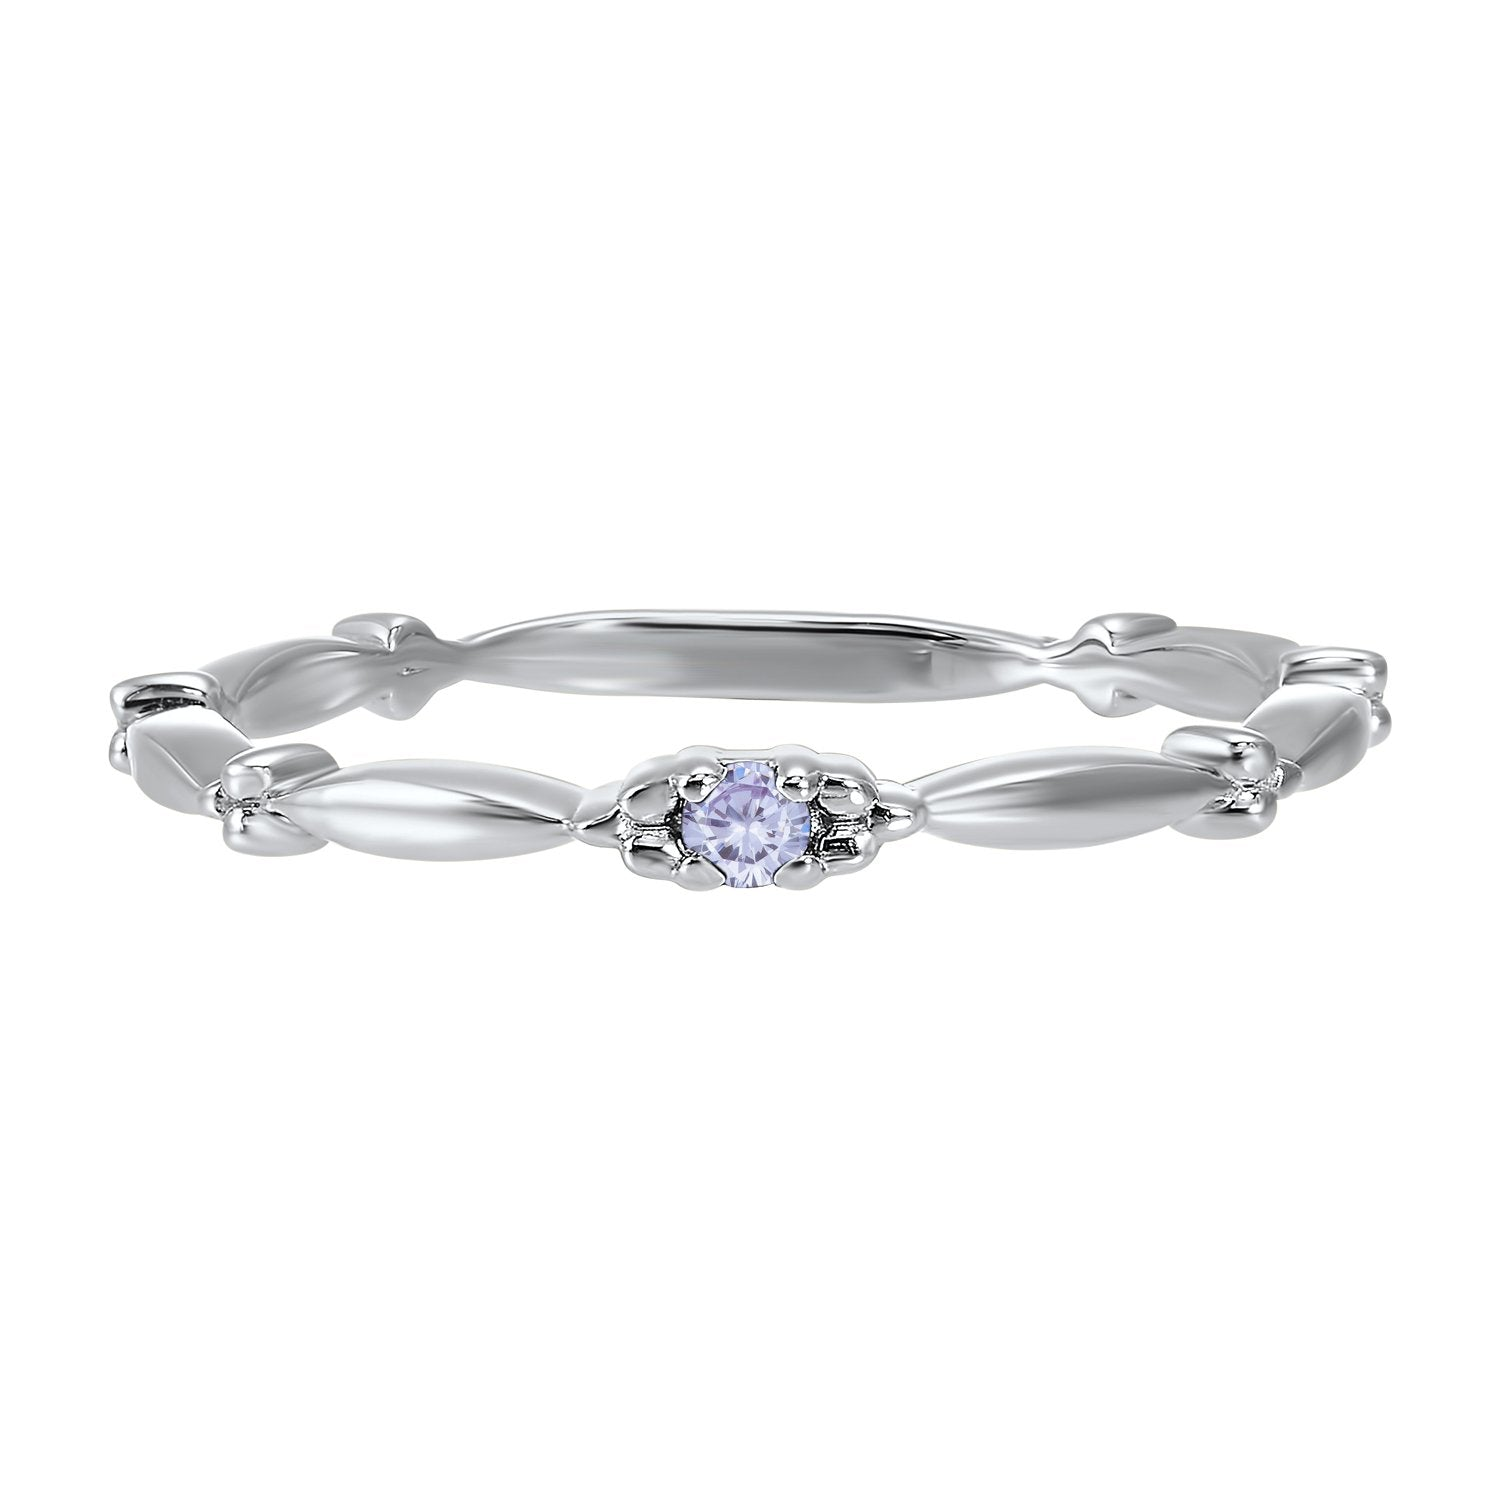 10K White Gold Stackable Prong Alexandrite Band